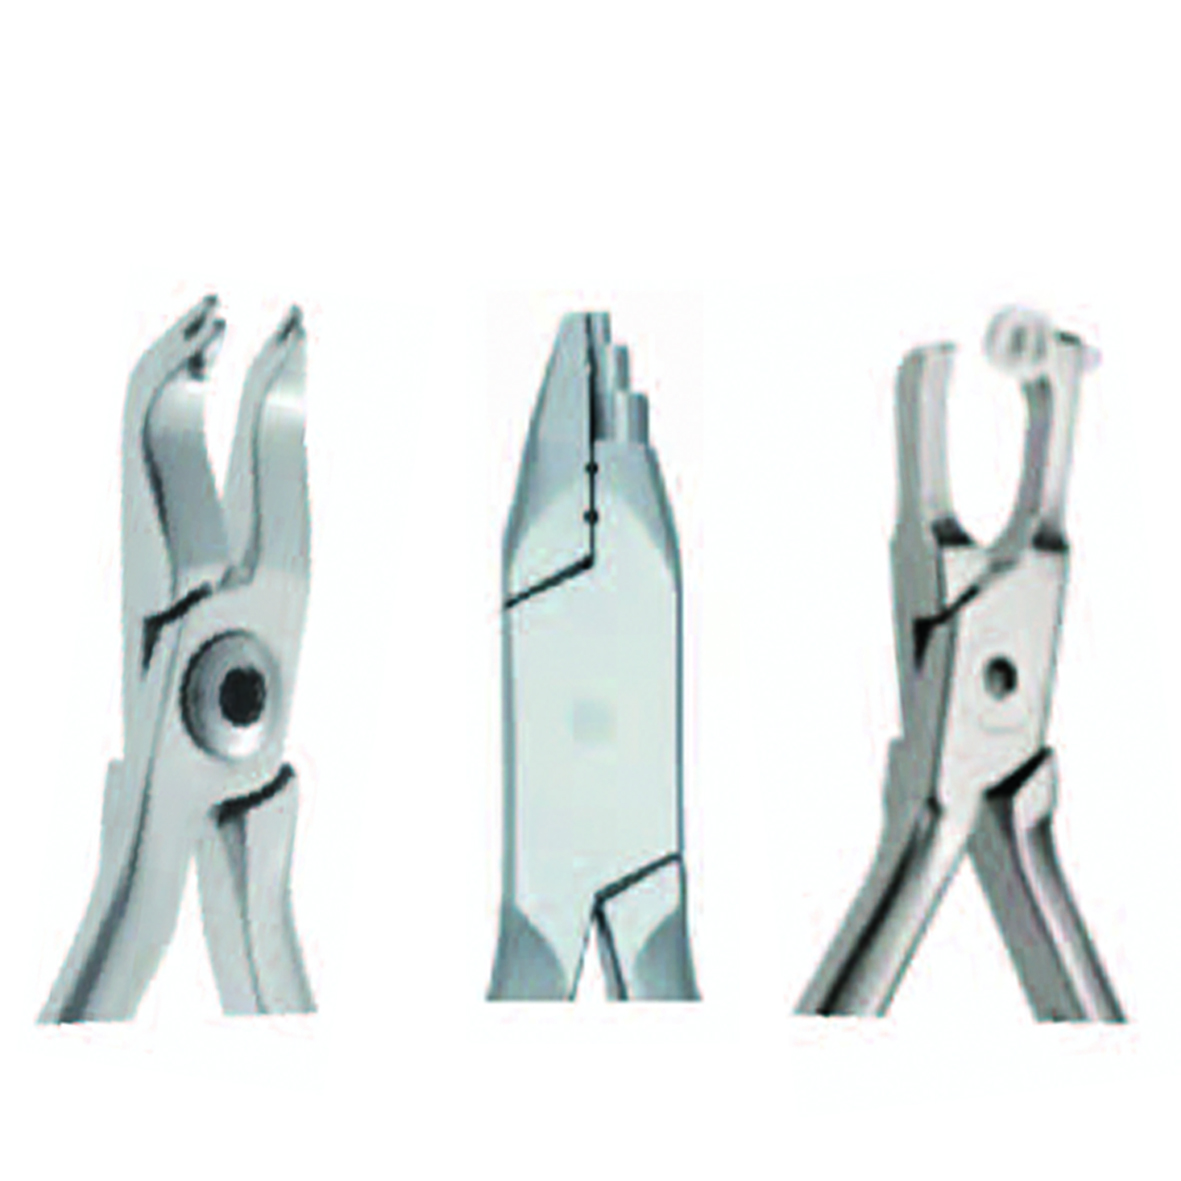 ORTHODONTIC TOOLS